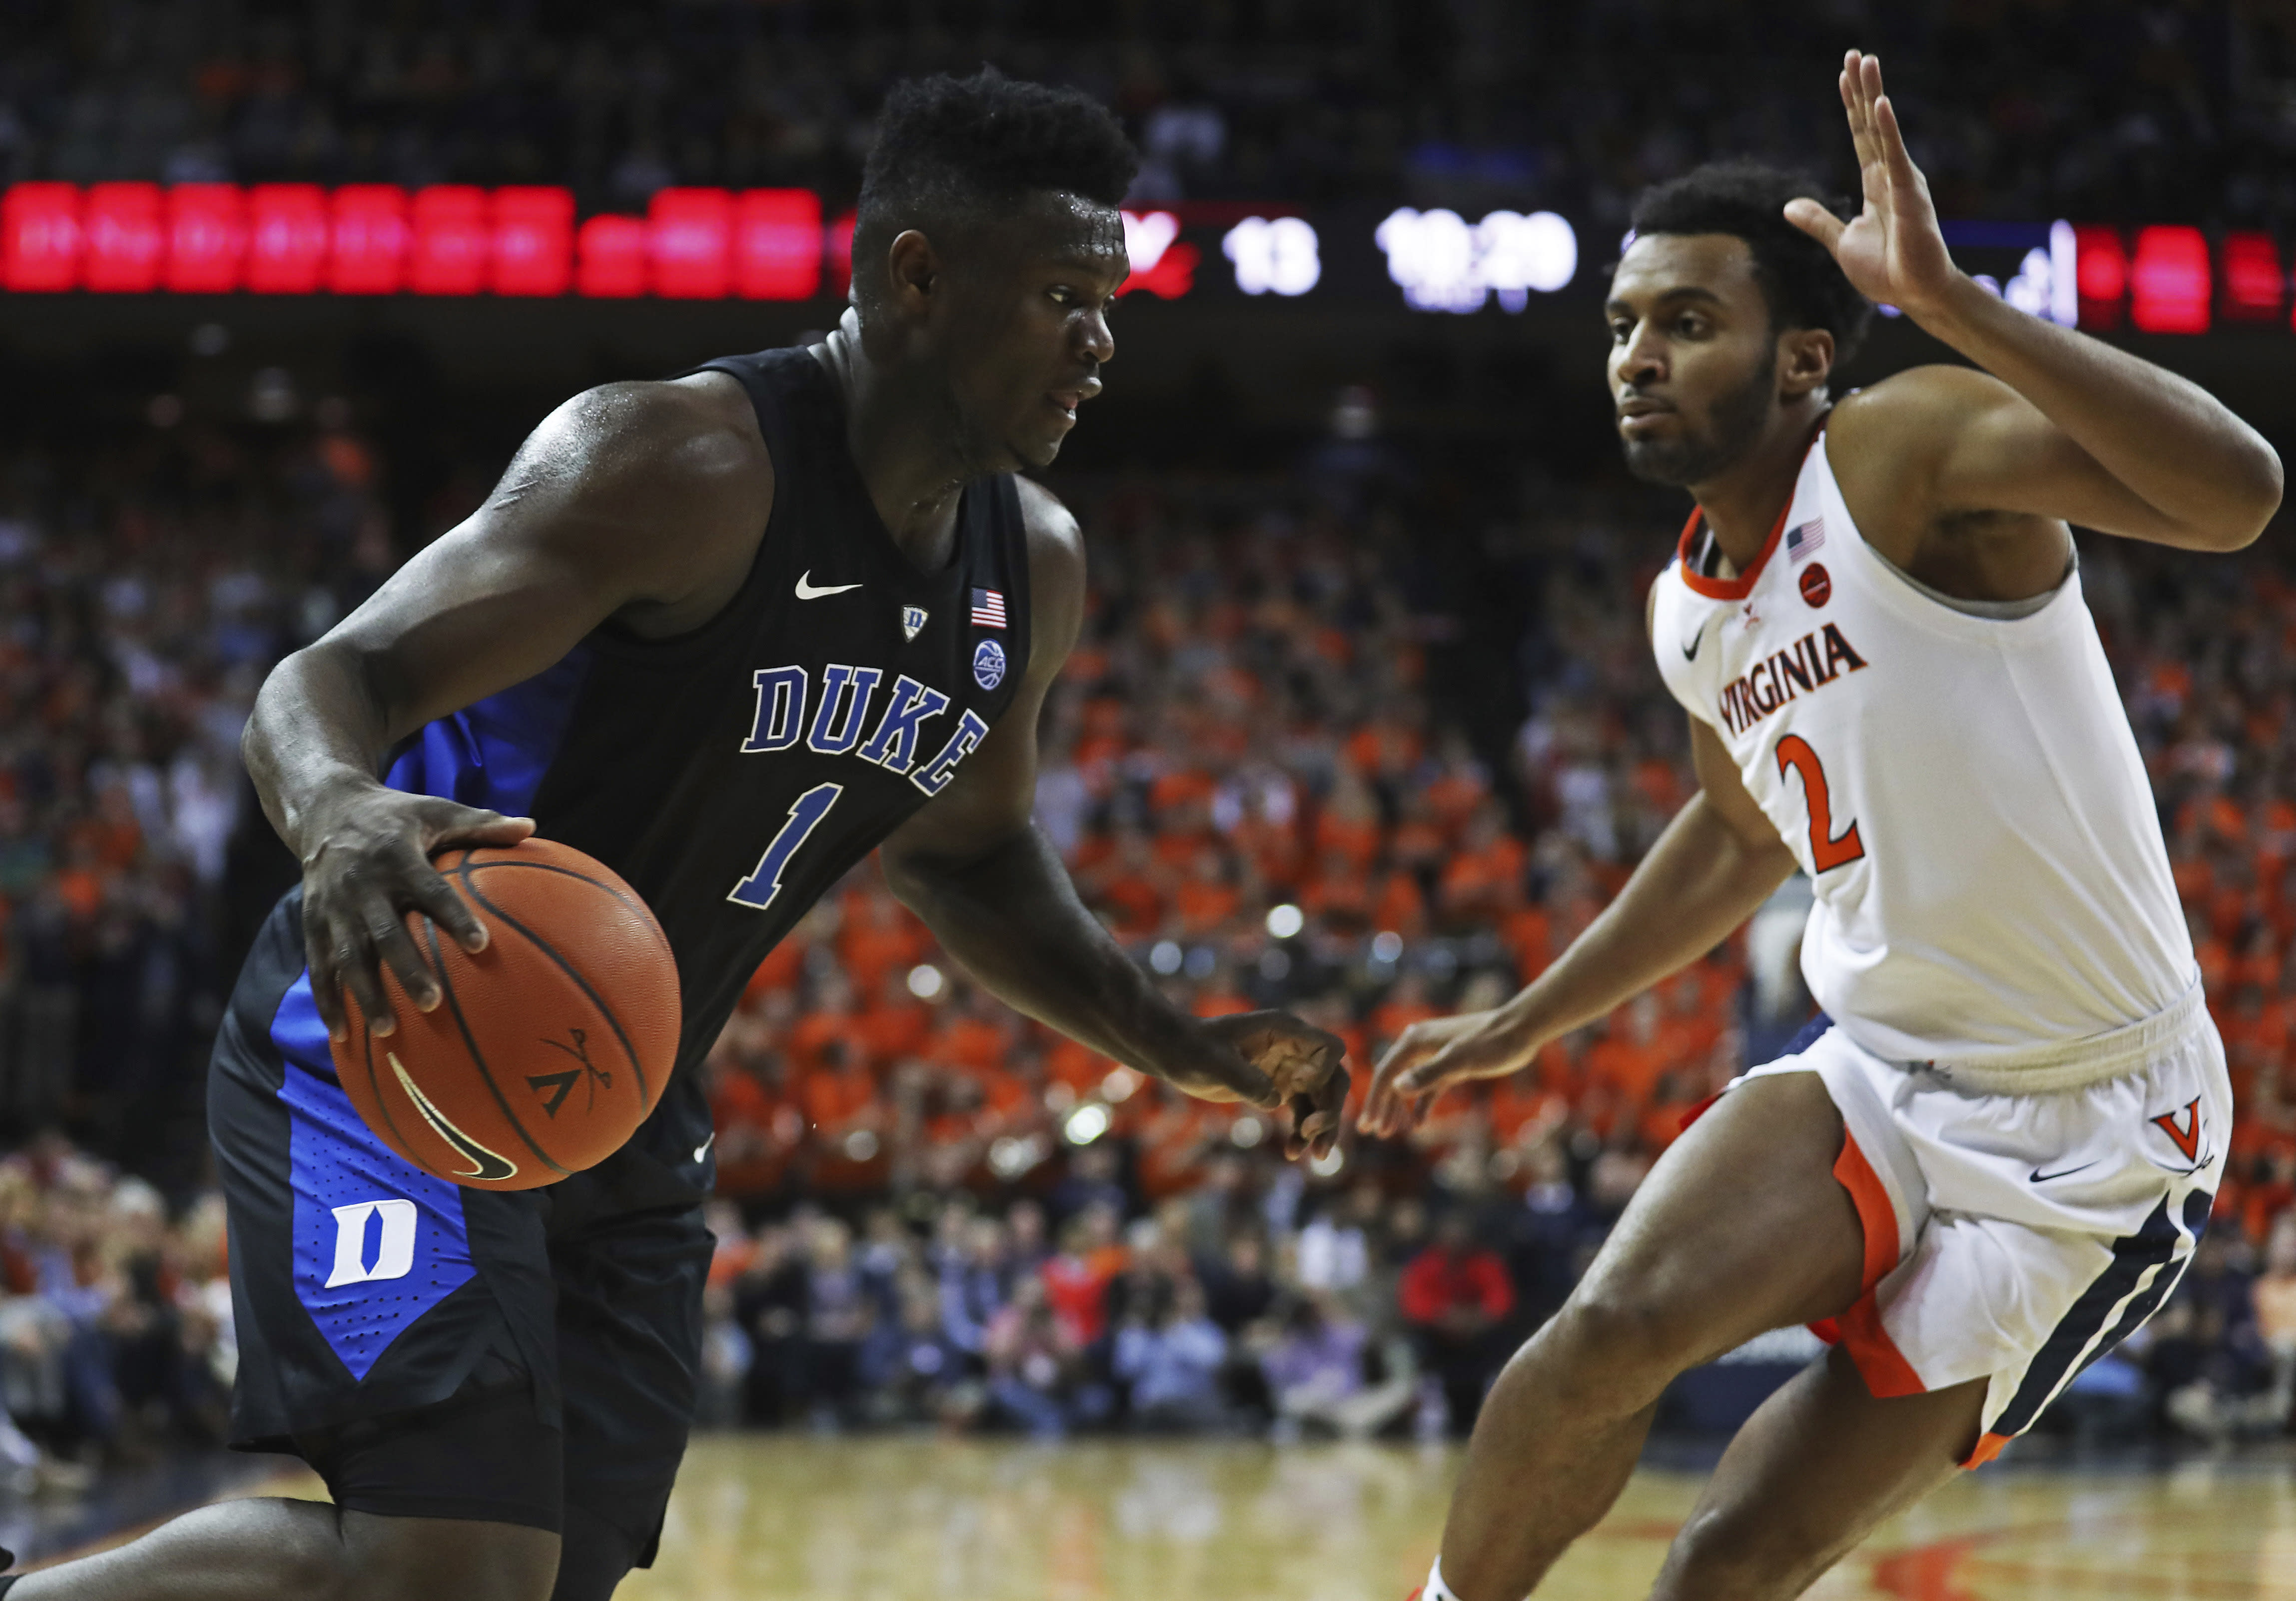 e7e095078718 Duke s Zion Williamson draws comparisons to LeBron in victory over Virginia